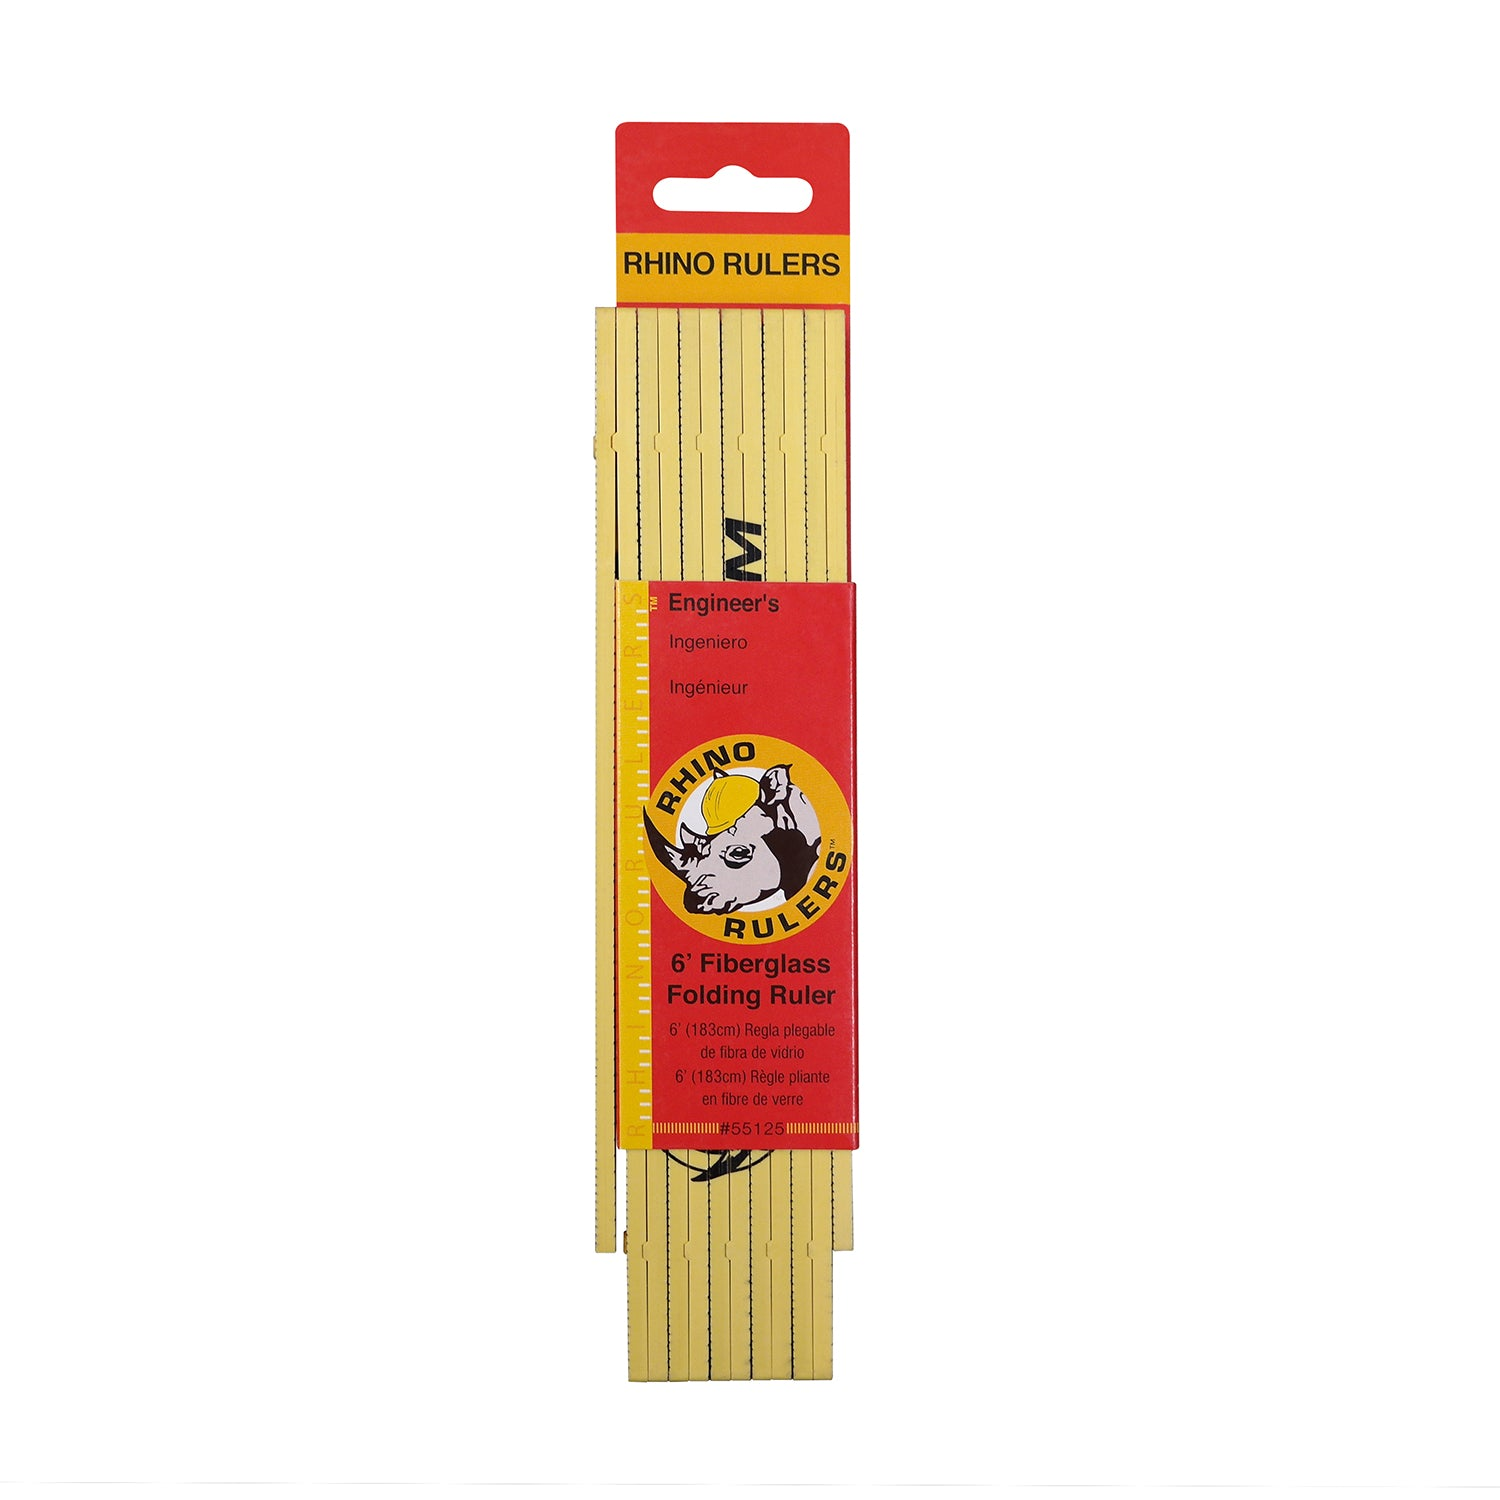 Auto Locators Of Texas >> Rhino Ruler 6' Fiberglass Folding Ruler (10ths/inches ...